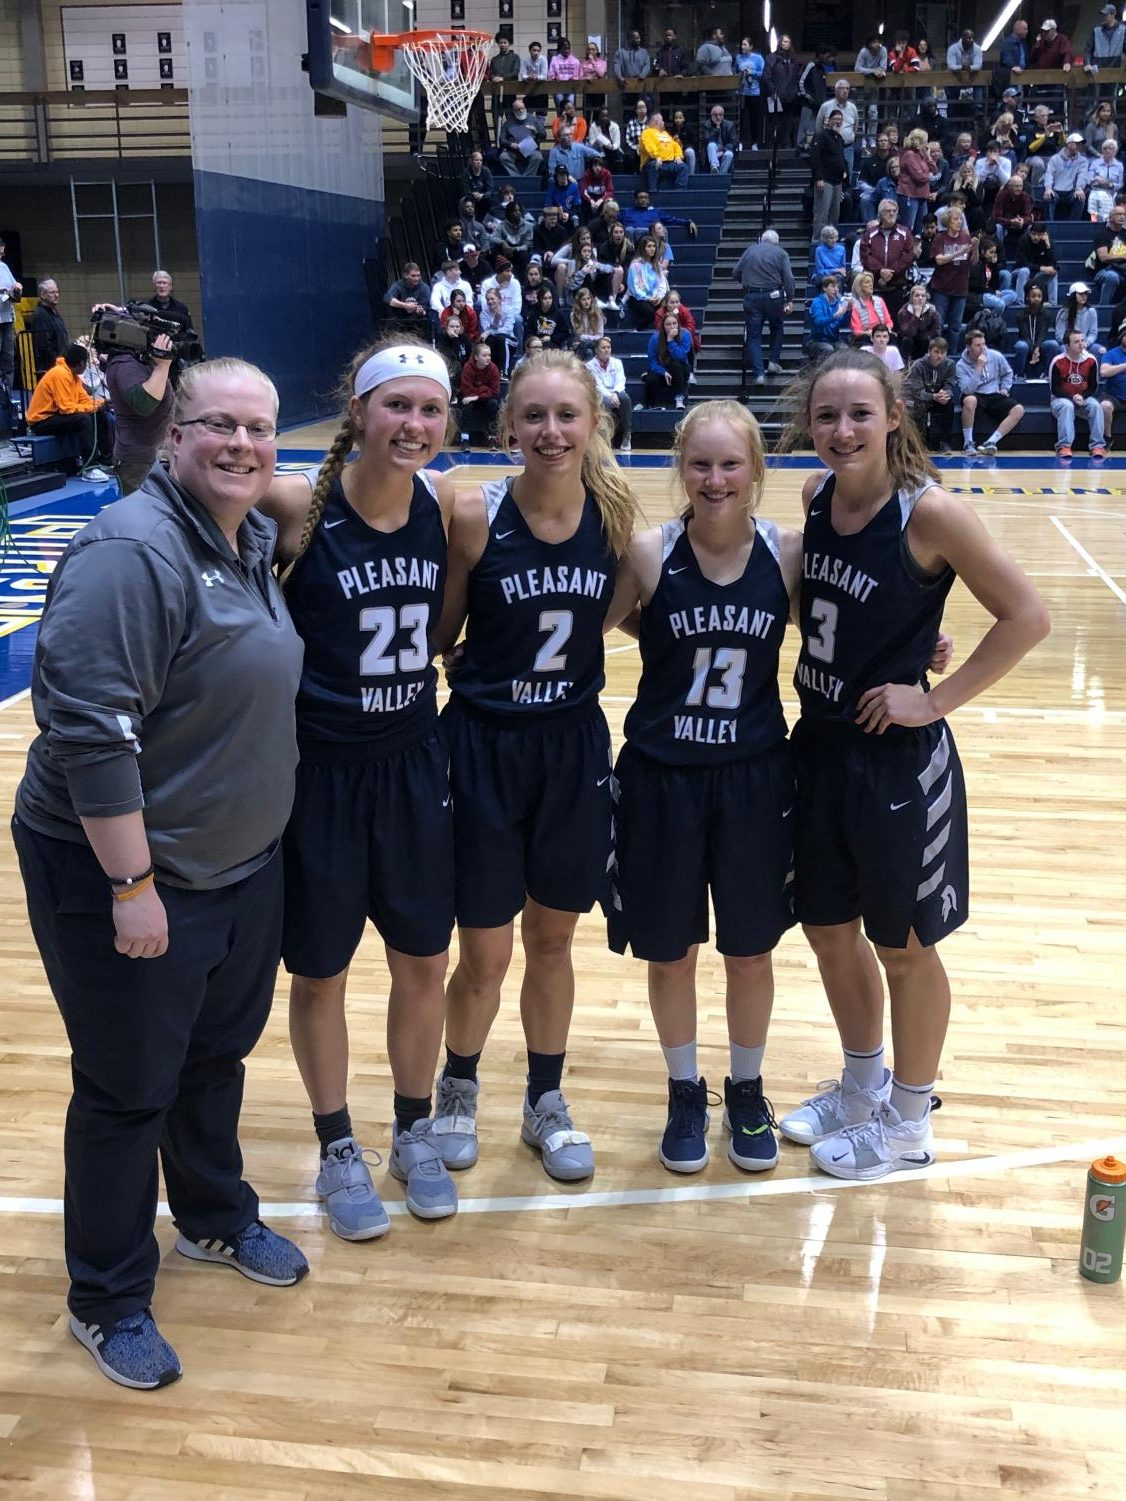 Coach Jennifer Goetz, Macy Beinborn, Adrea Arthofer, Mallory Lafever and Carli Spelhaug together after an impressive showing at the Iowa / Illinois Senior All Star game.